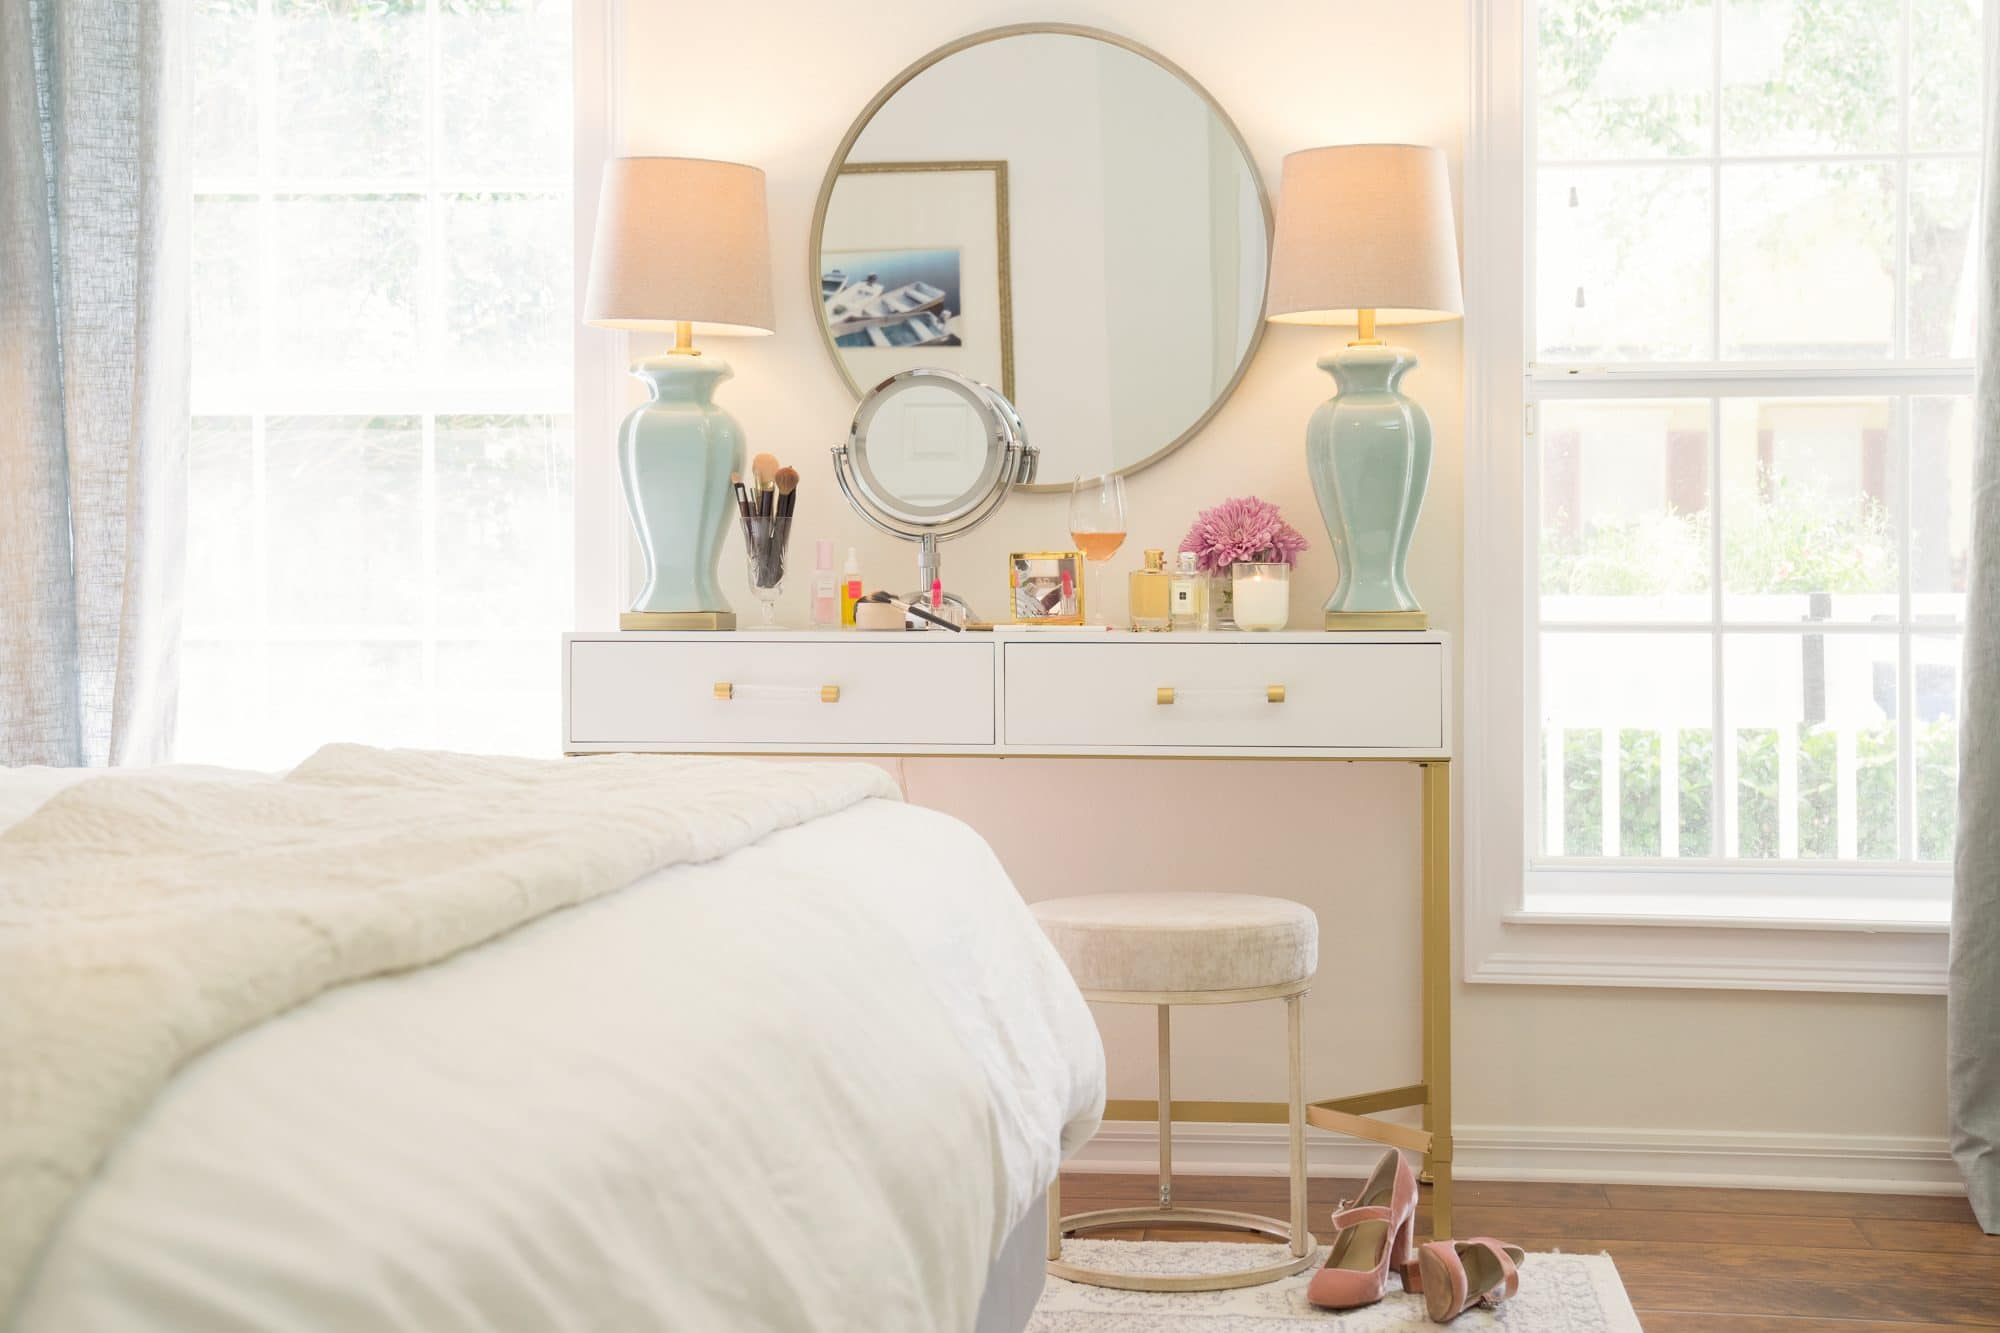 Small Space Vanity Set Up | www.ashleybrookedesigns.com